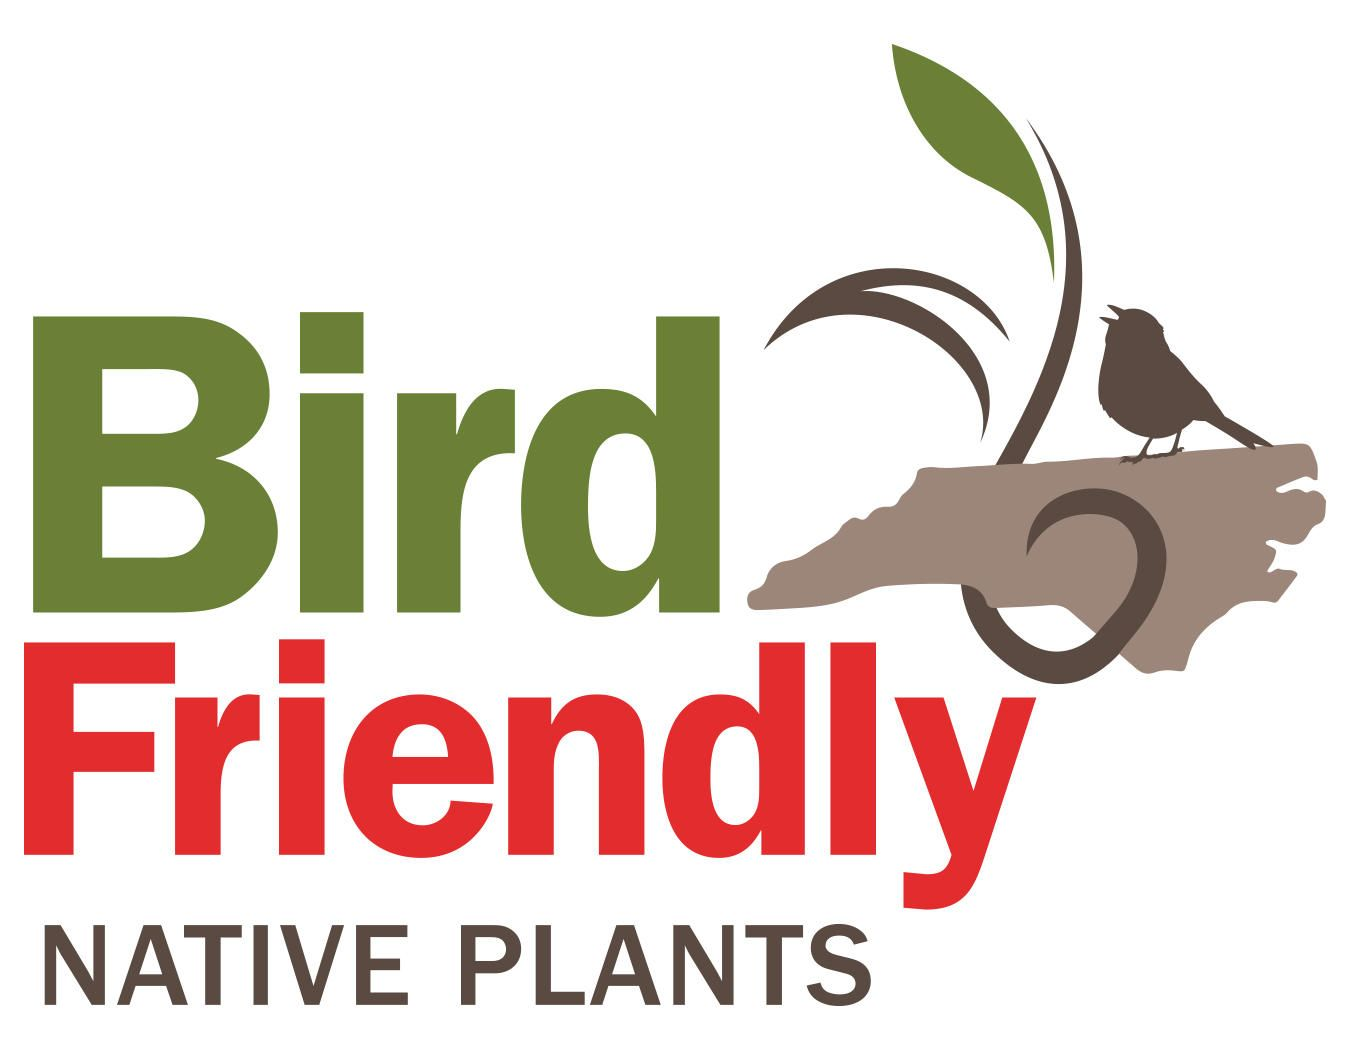 This list of 400 recommended birdfriendly native plants serve as a guide for everyone interested in choosing plants that help birds thrive alongside people